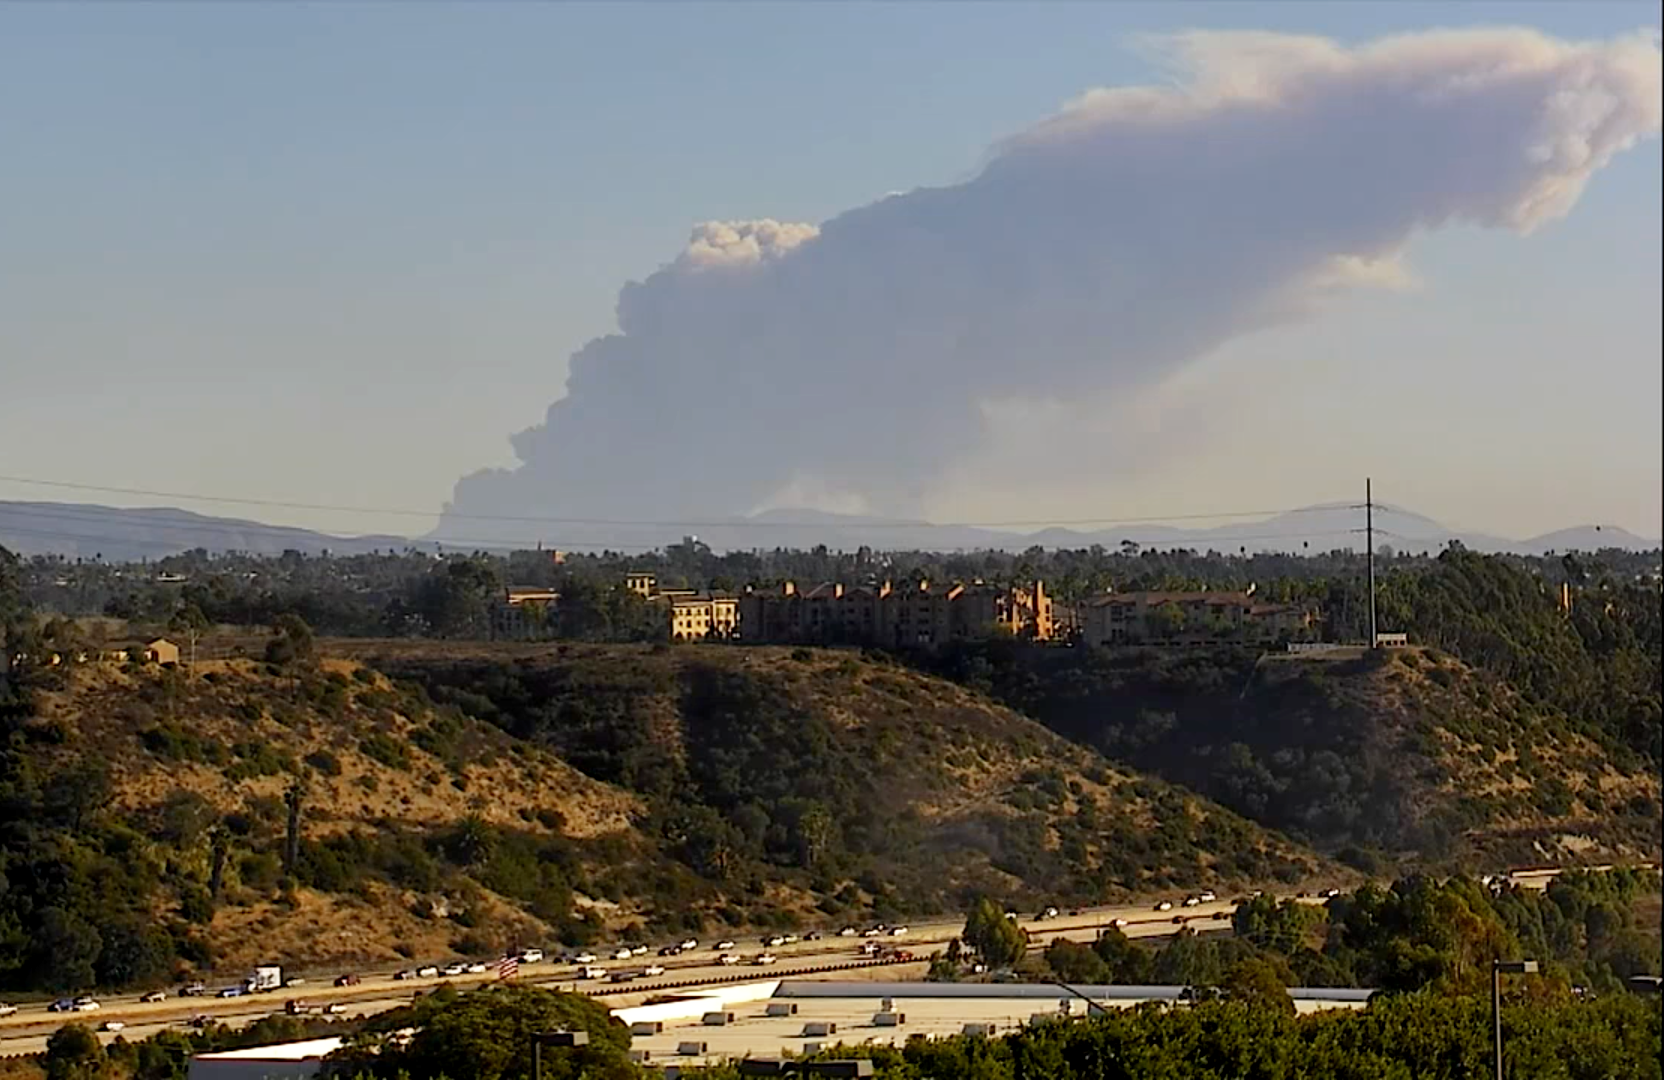 Smoke From Tijuana Fire Seen in San Diego - Local Records Office